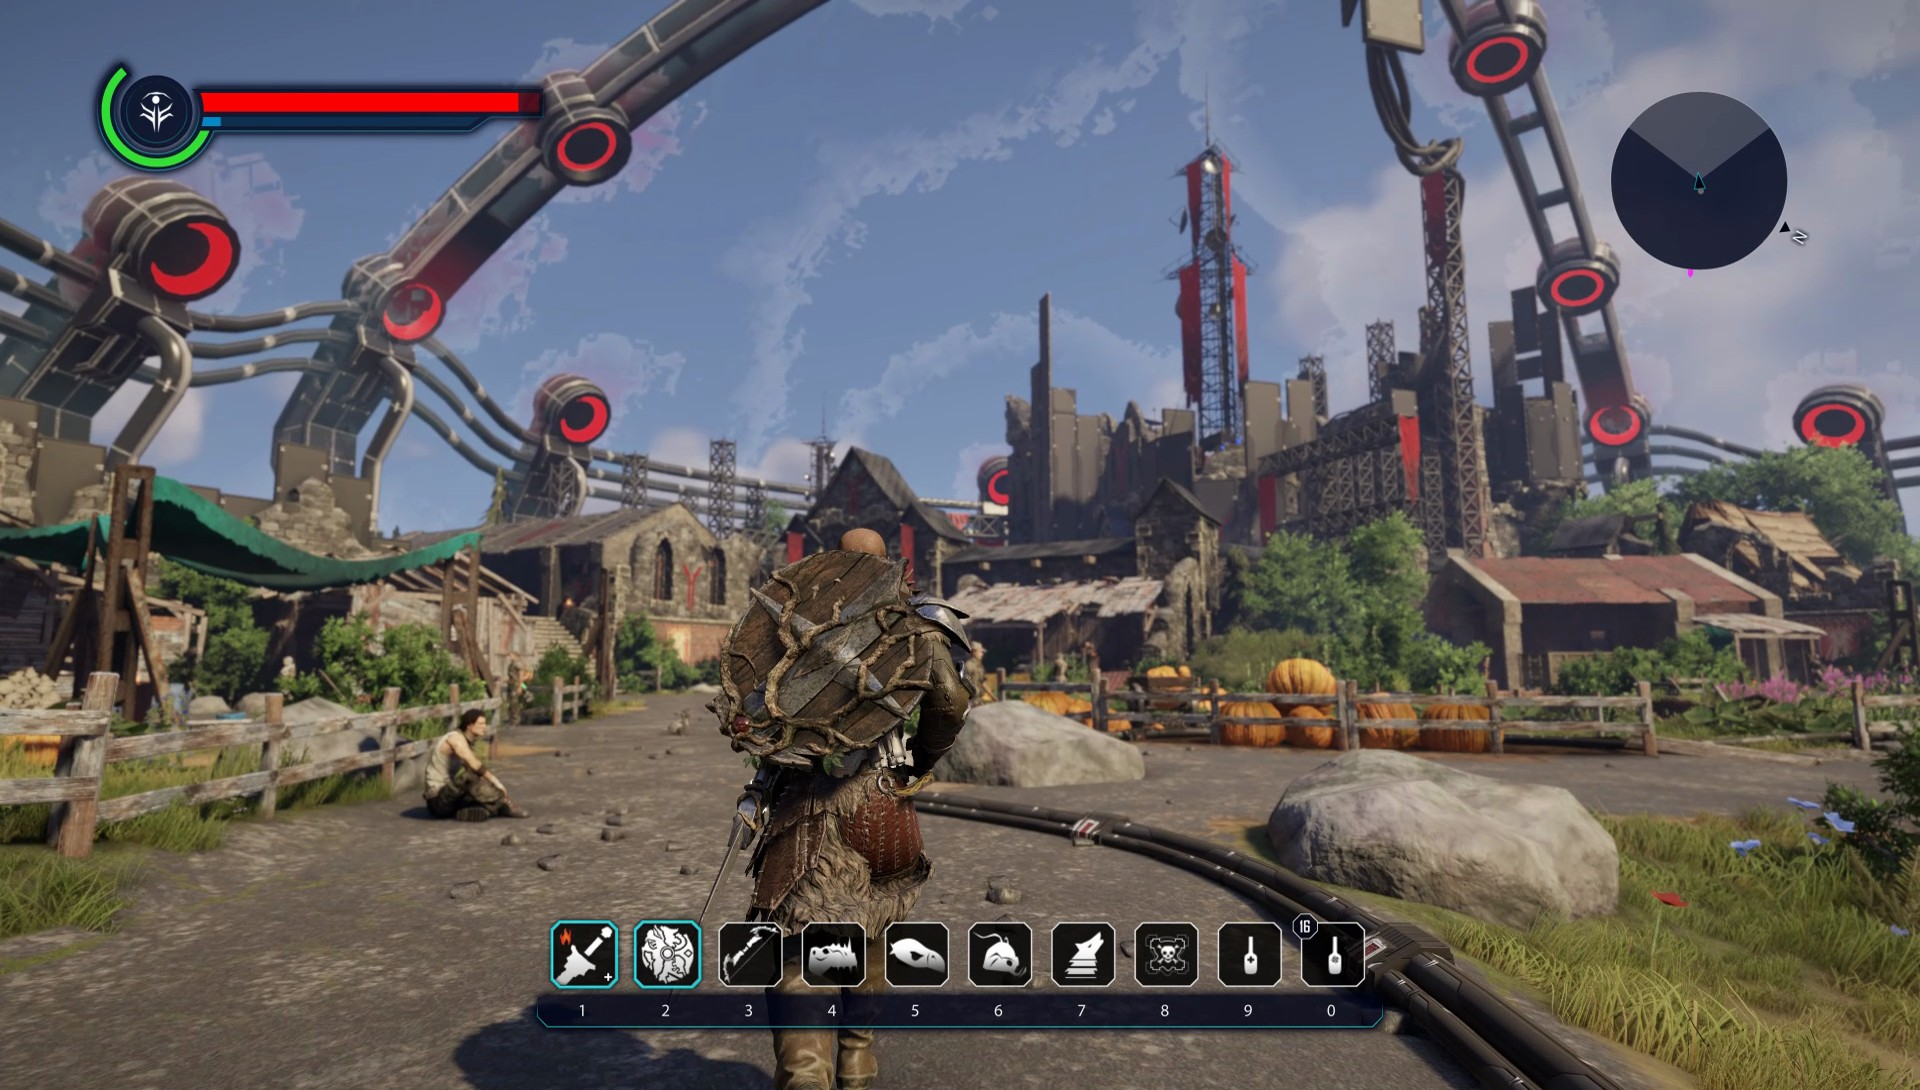 Elex-PC-Games-Screenshots-019-pc-games.jpg